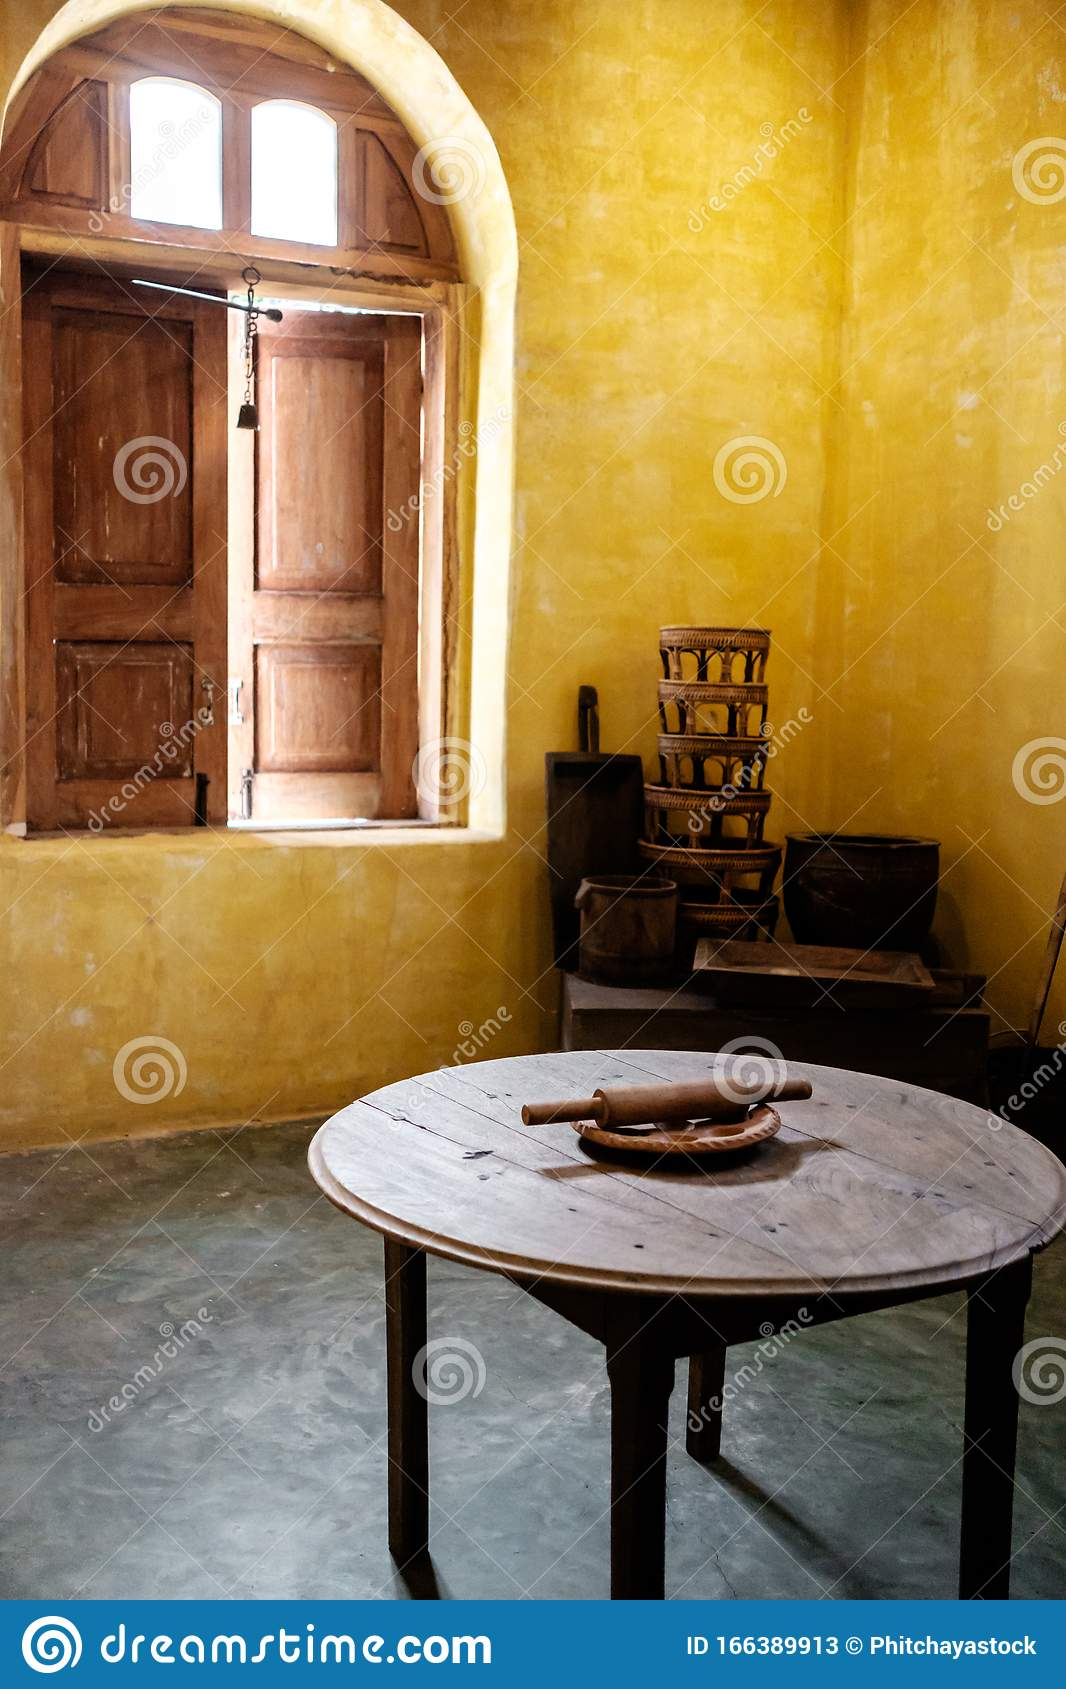 Antique Kitchen Decoration With Potteries And Photo Frames Stock Image Image Of Decor Interior 166389913